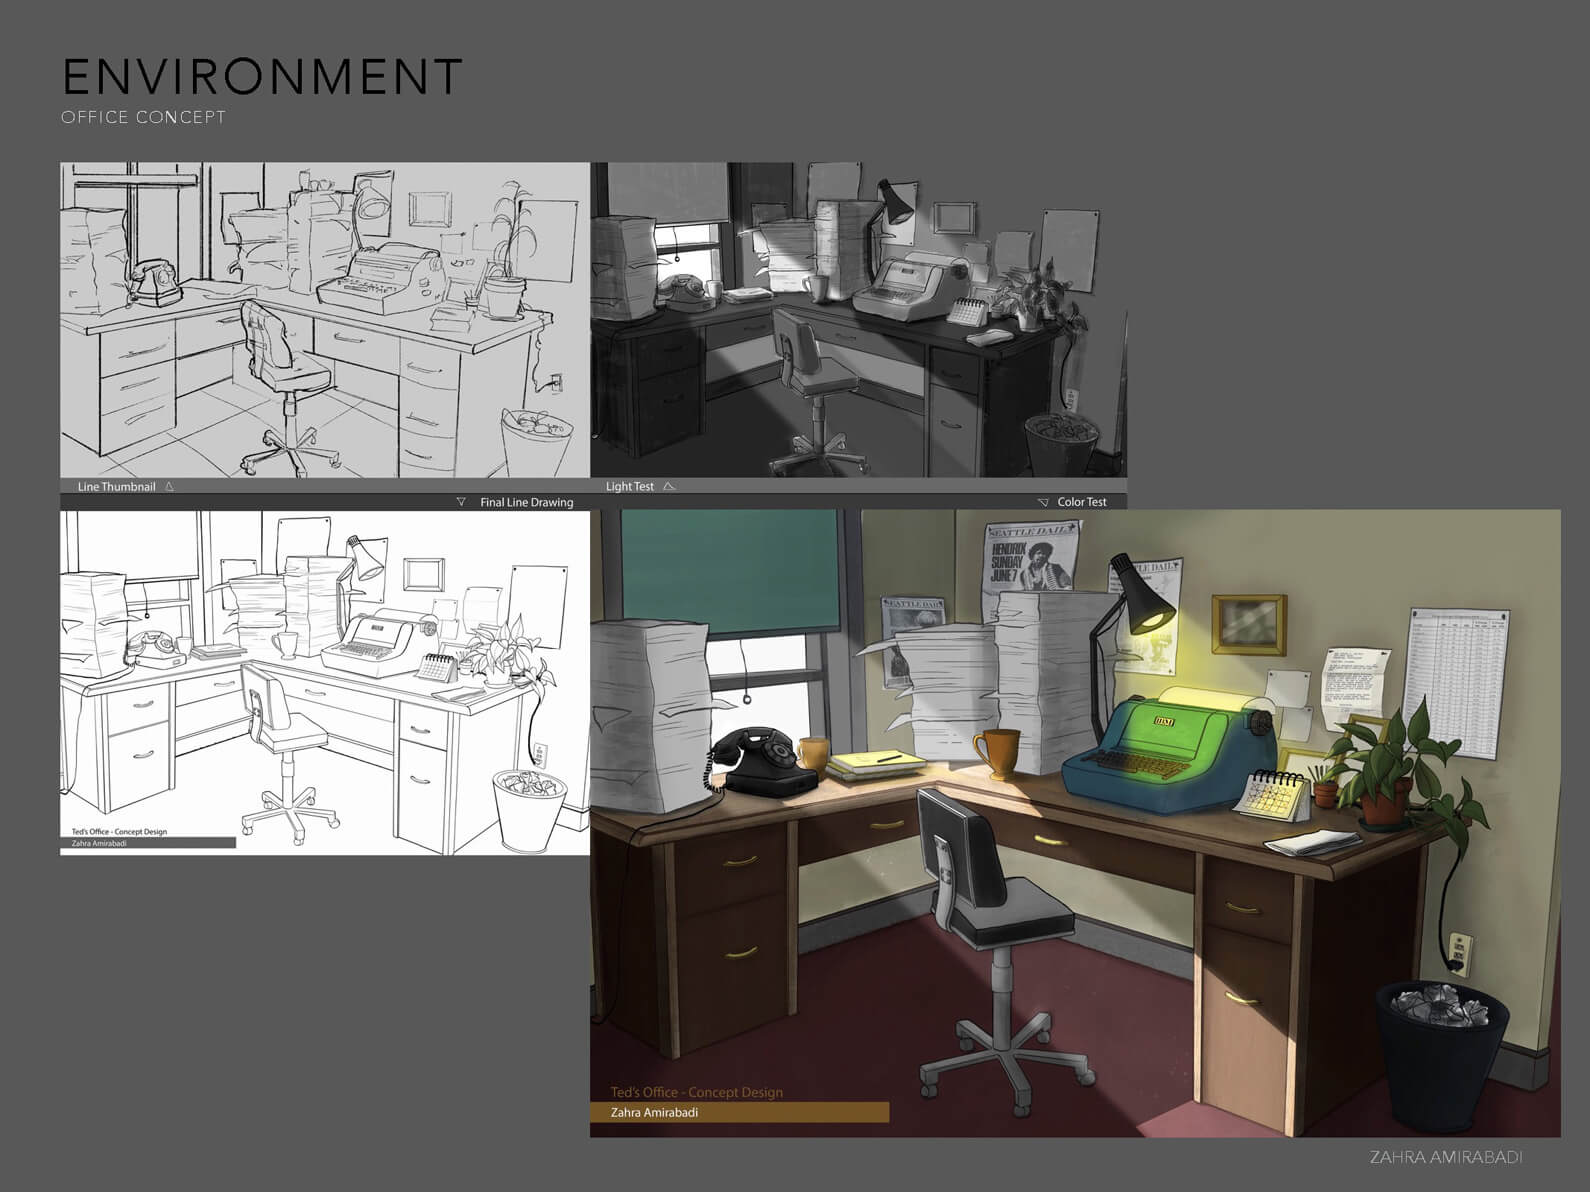 Concept sketches and drawings of the interior office set in Orientation Center for the Unseen